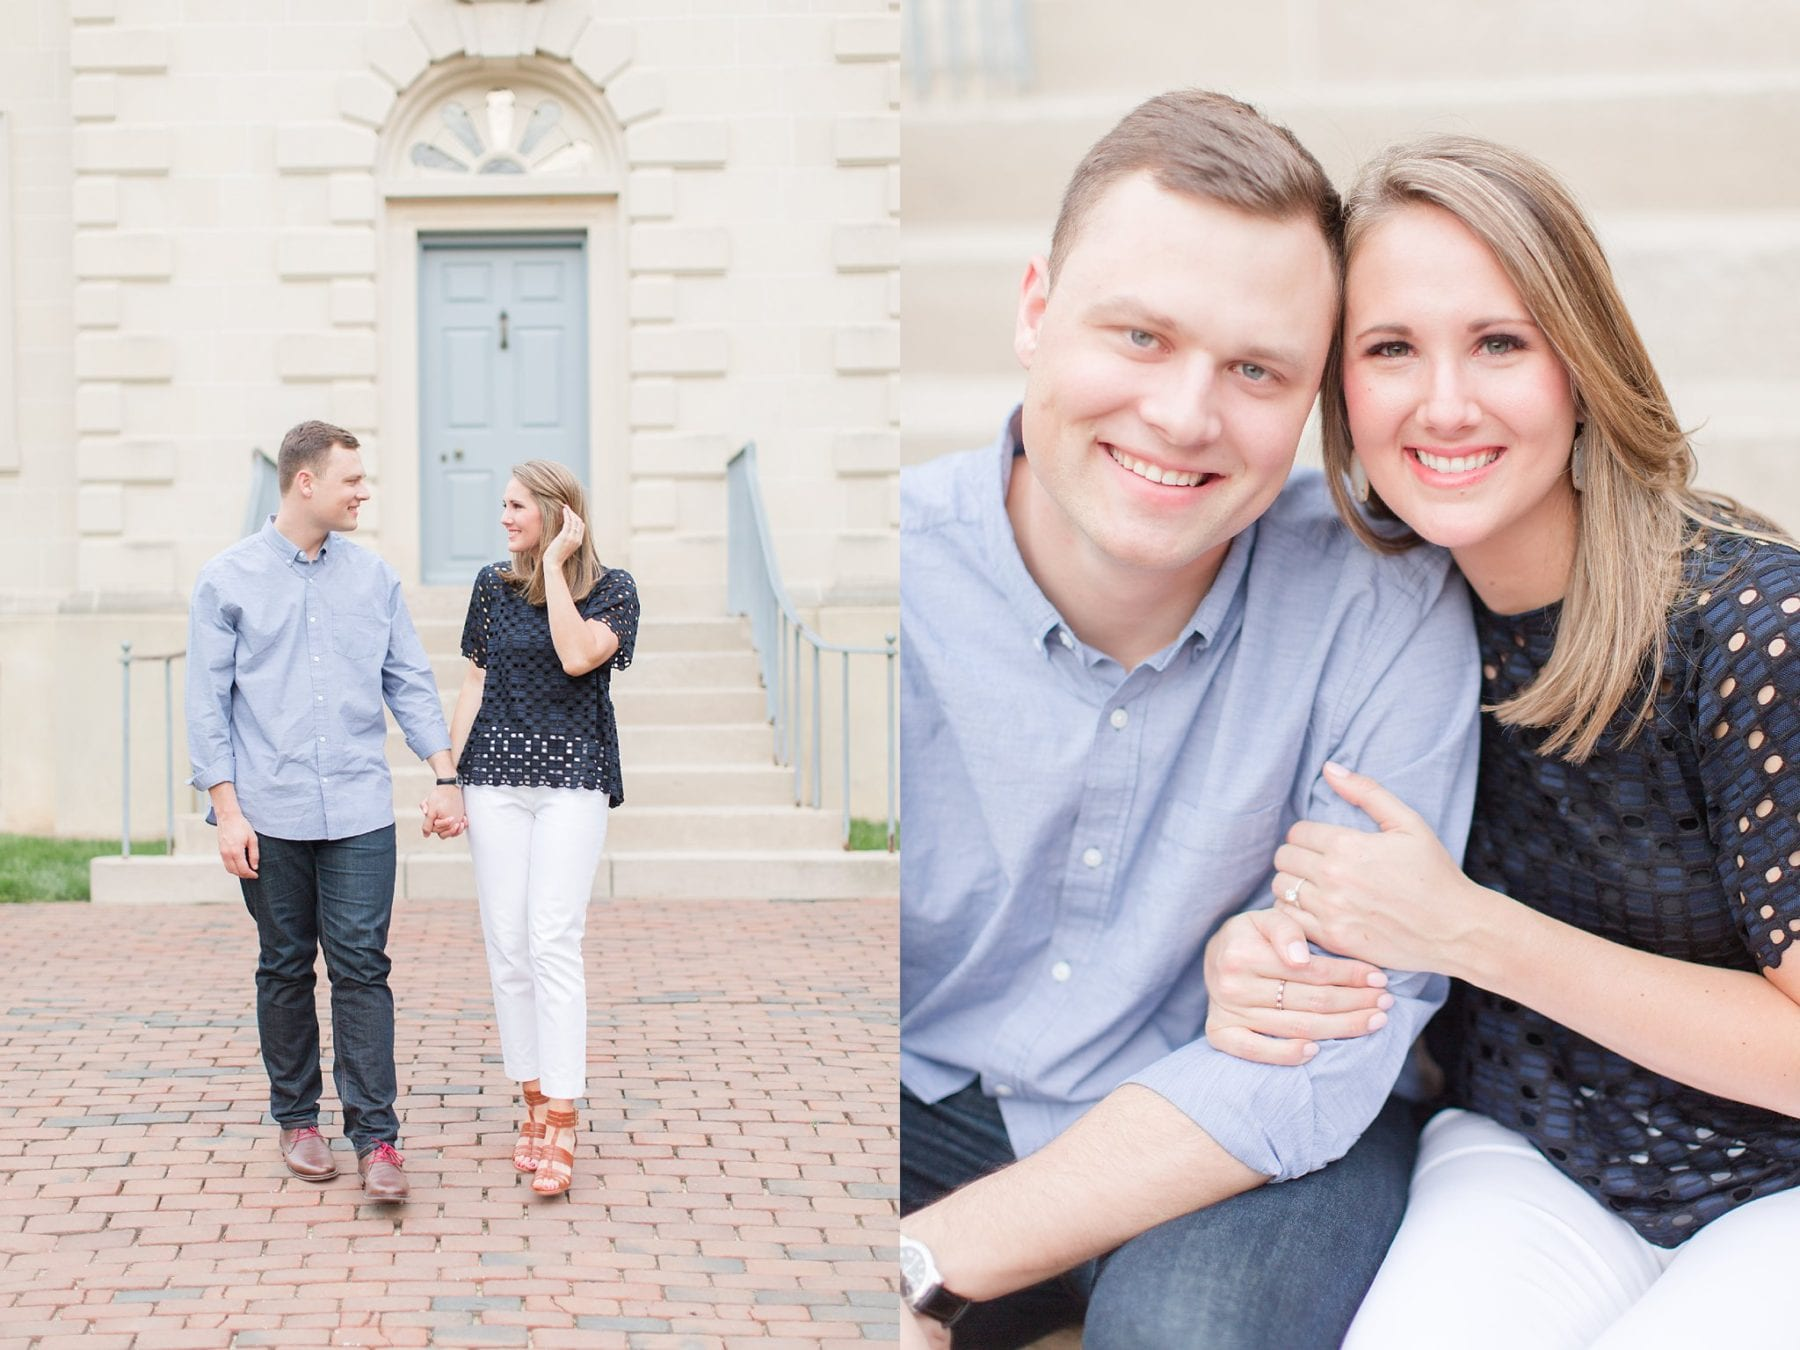 Springtime Old Town Alexandria Engagement Session Matt & Maxie Megan Kelsey Photography-297.jpg